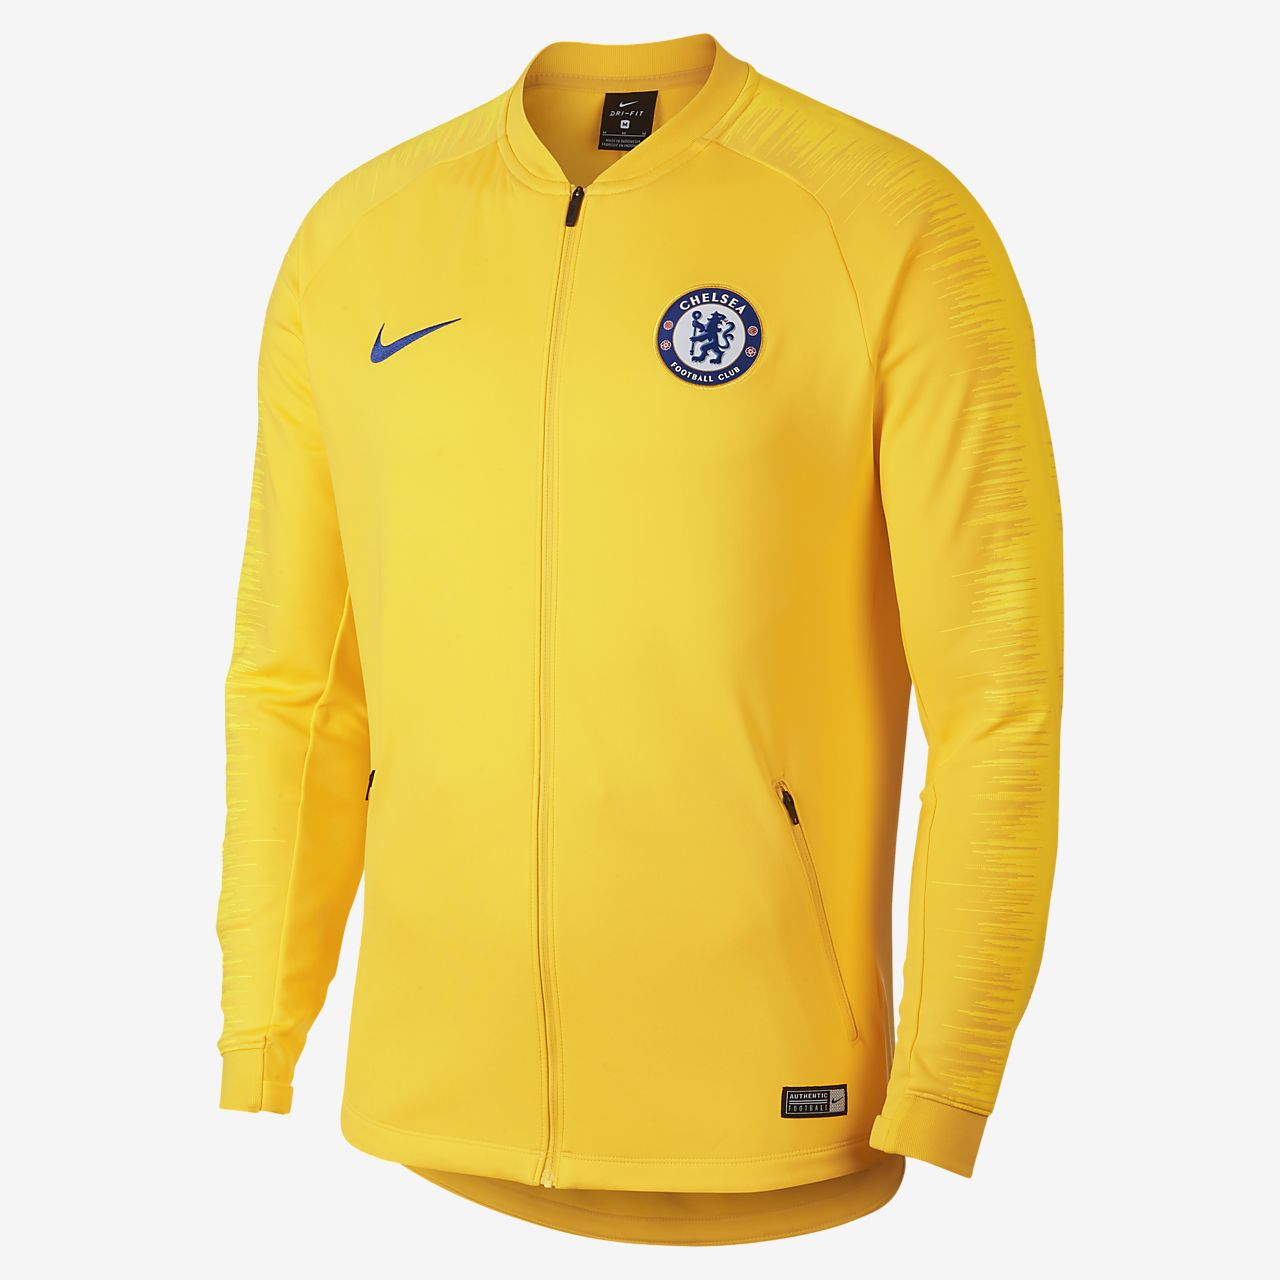 709019de2 Chelsea FC Anthem Men's Football Jacket. Nike.com ZA